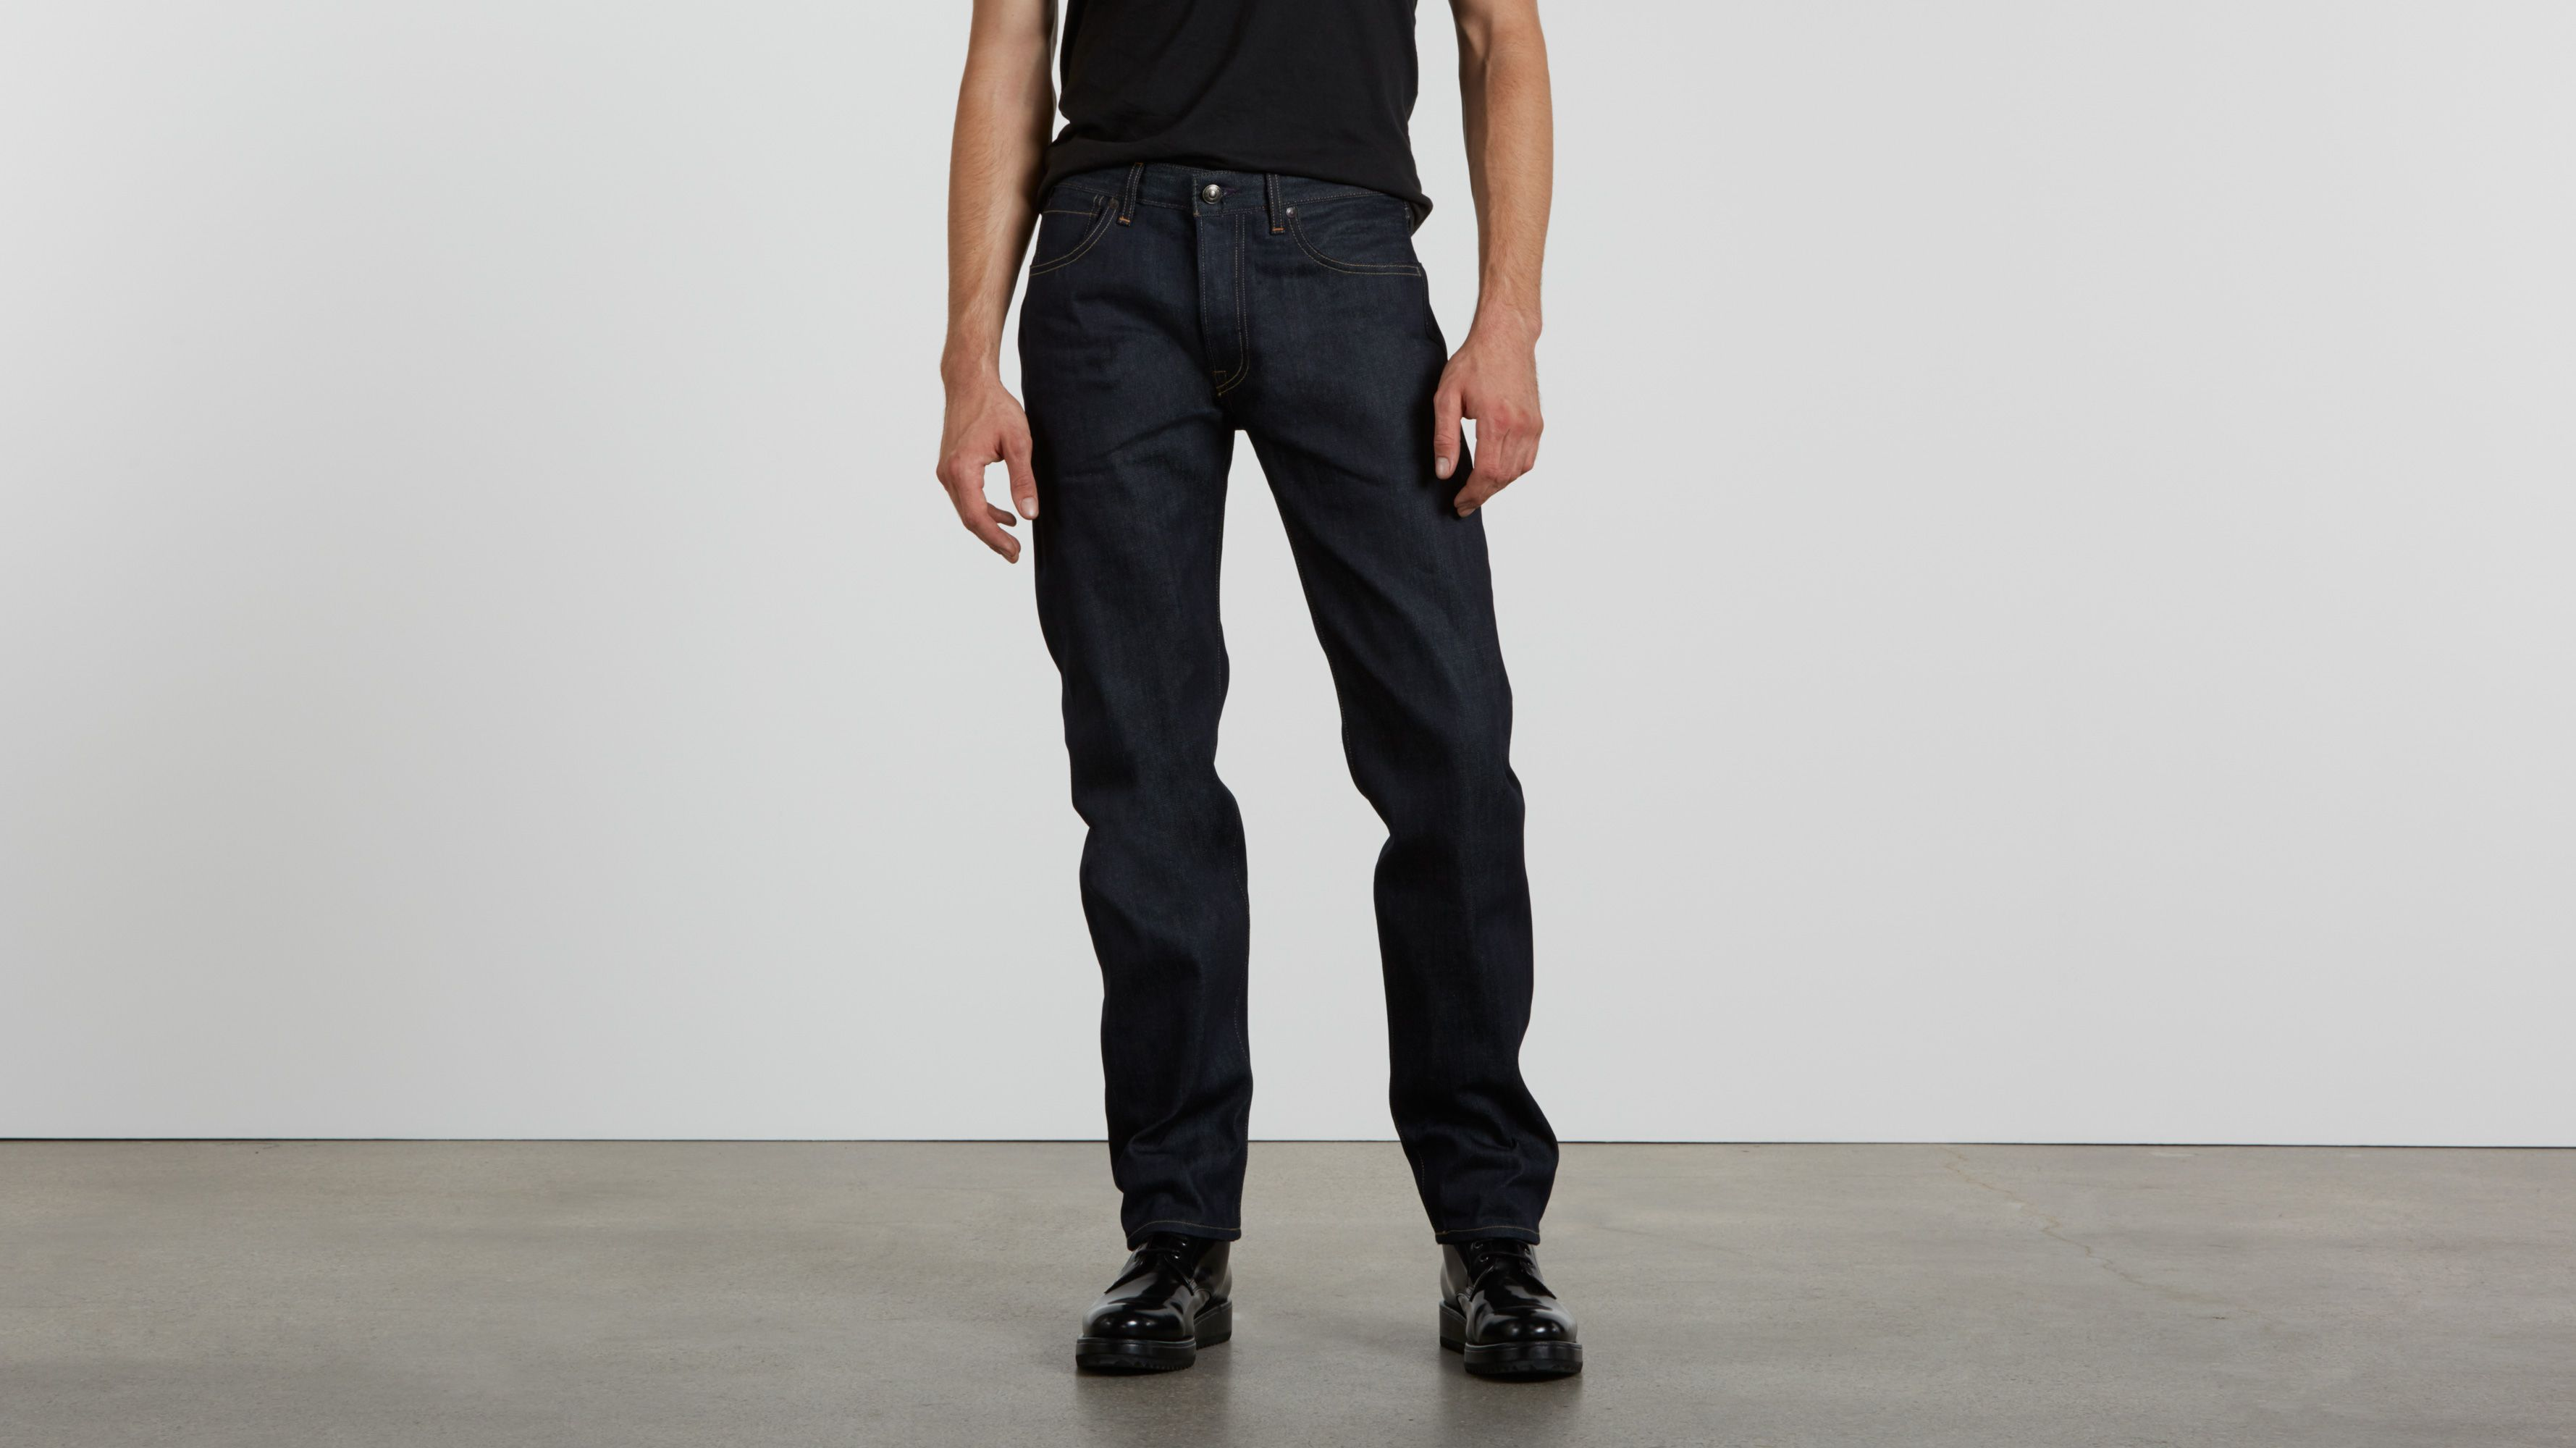 Ruler Straight Jeans - Indigo Rigid